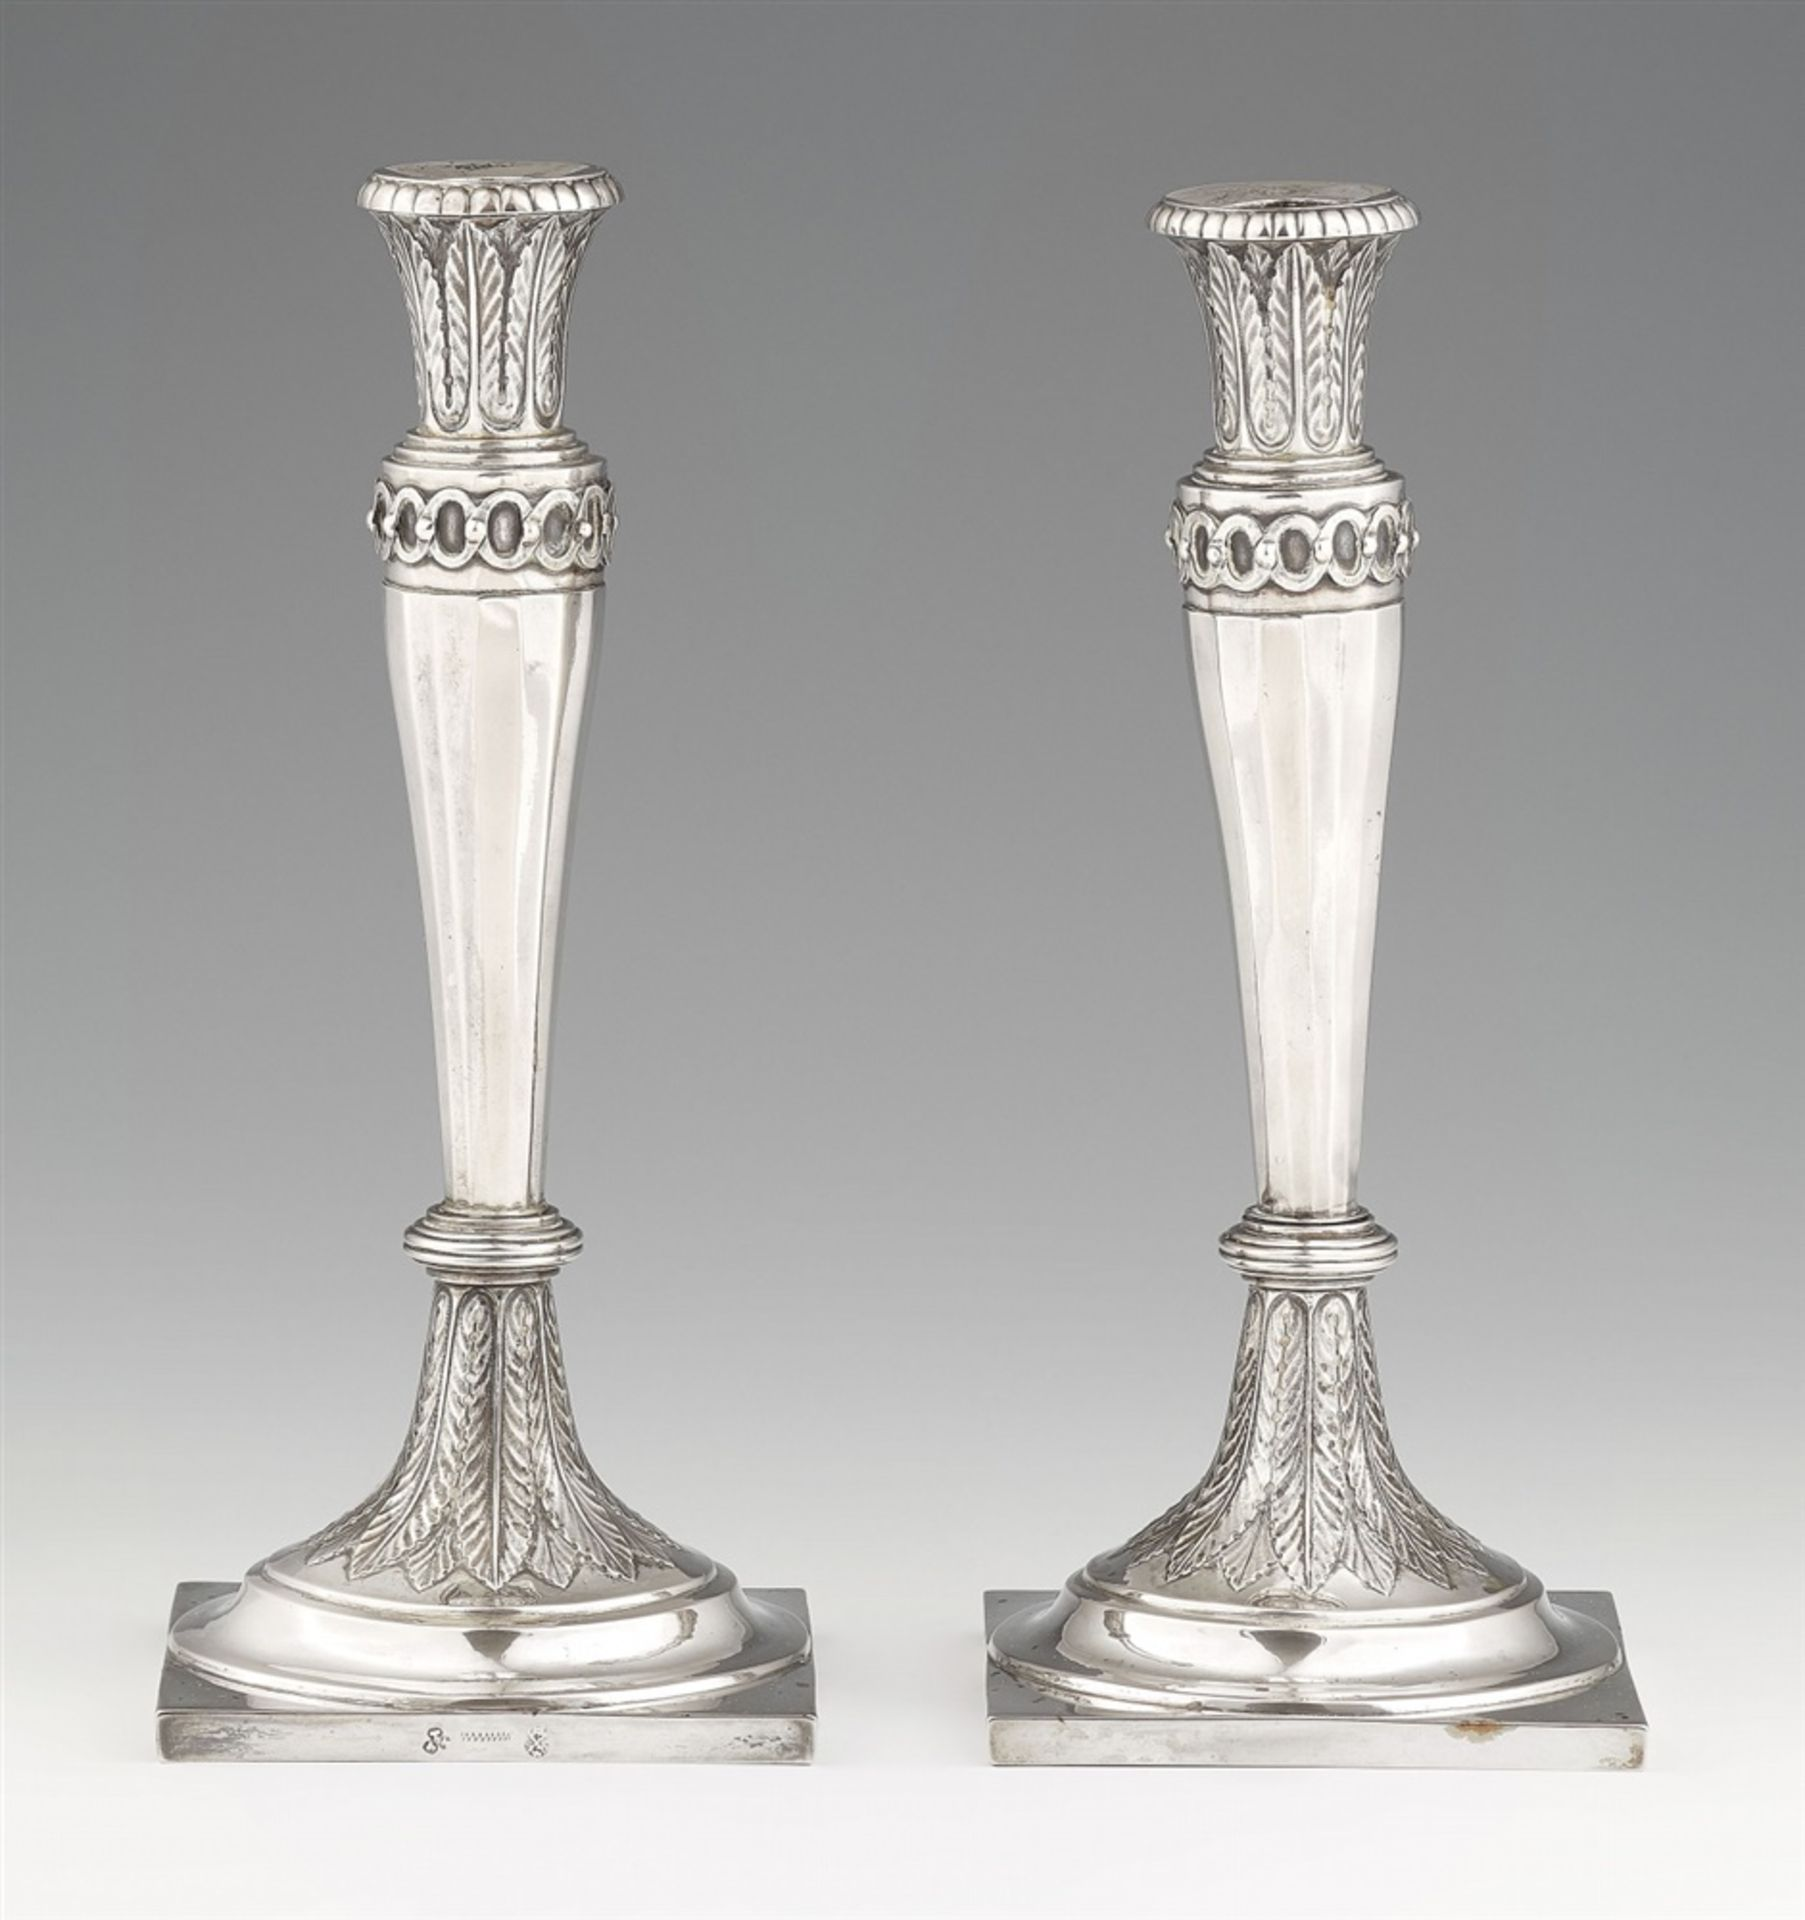 Los 747 - A pair of Weißenfels silver candlesticksSilver. Square bases with lancet décor supporting tapering